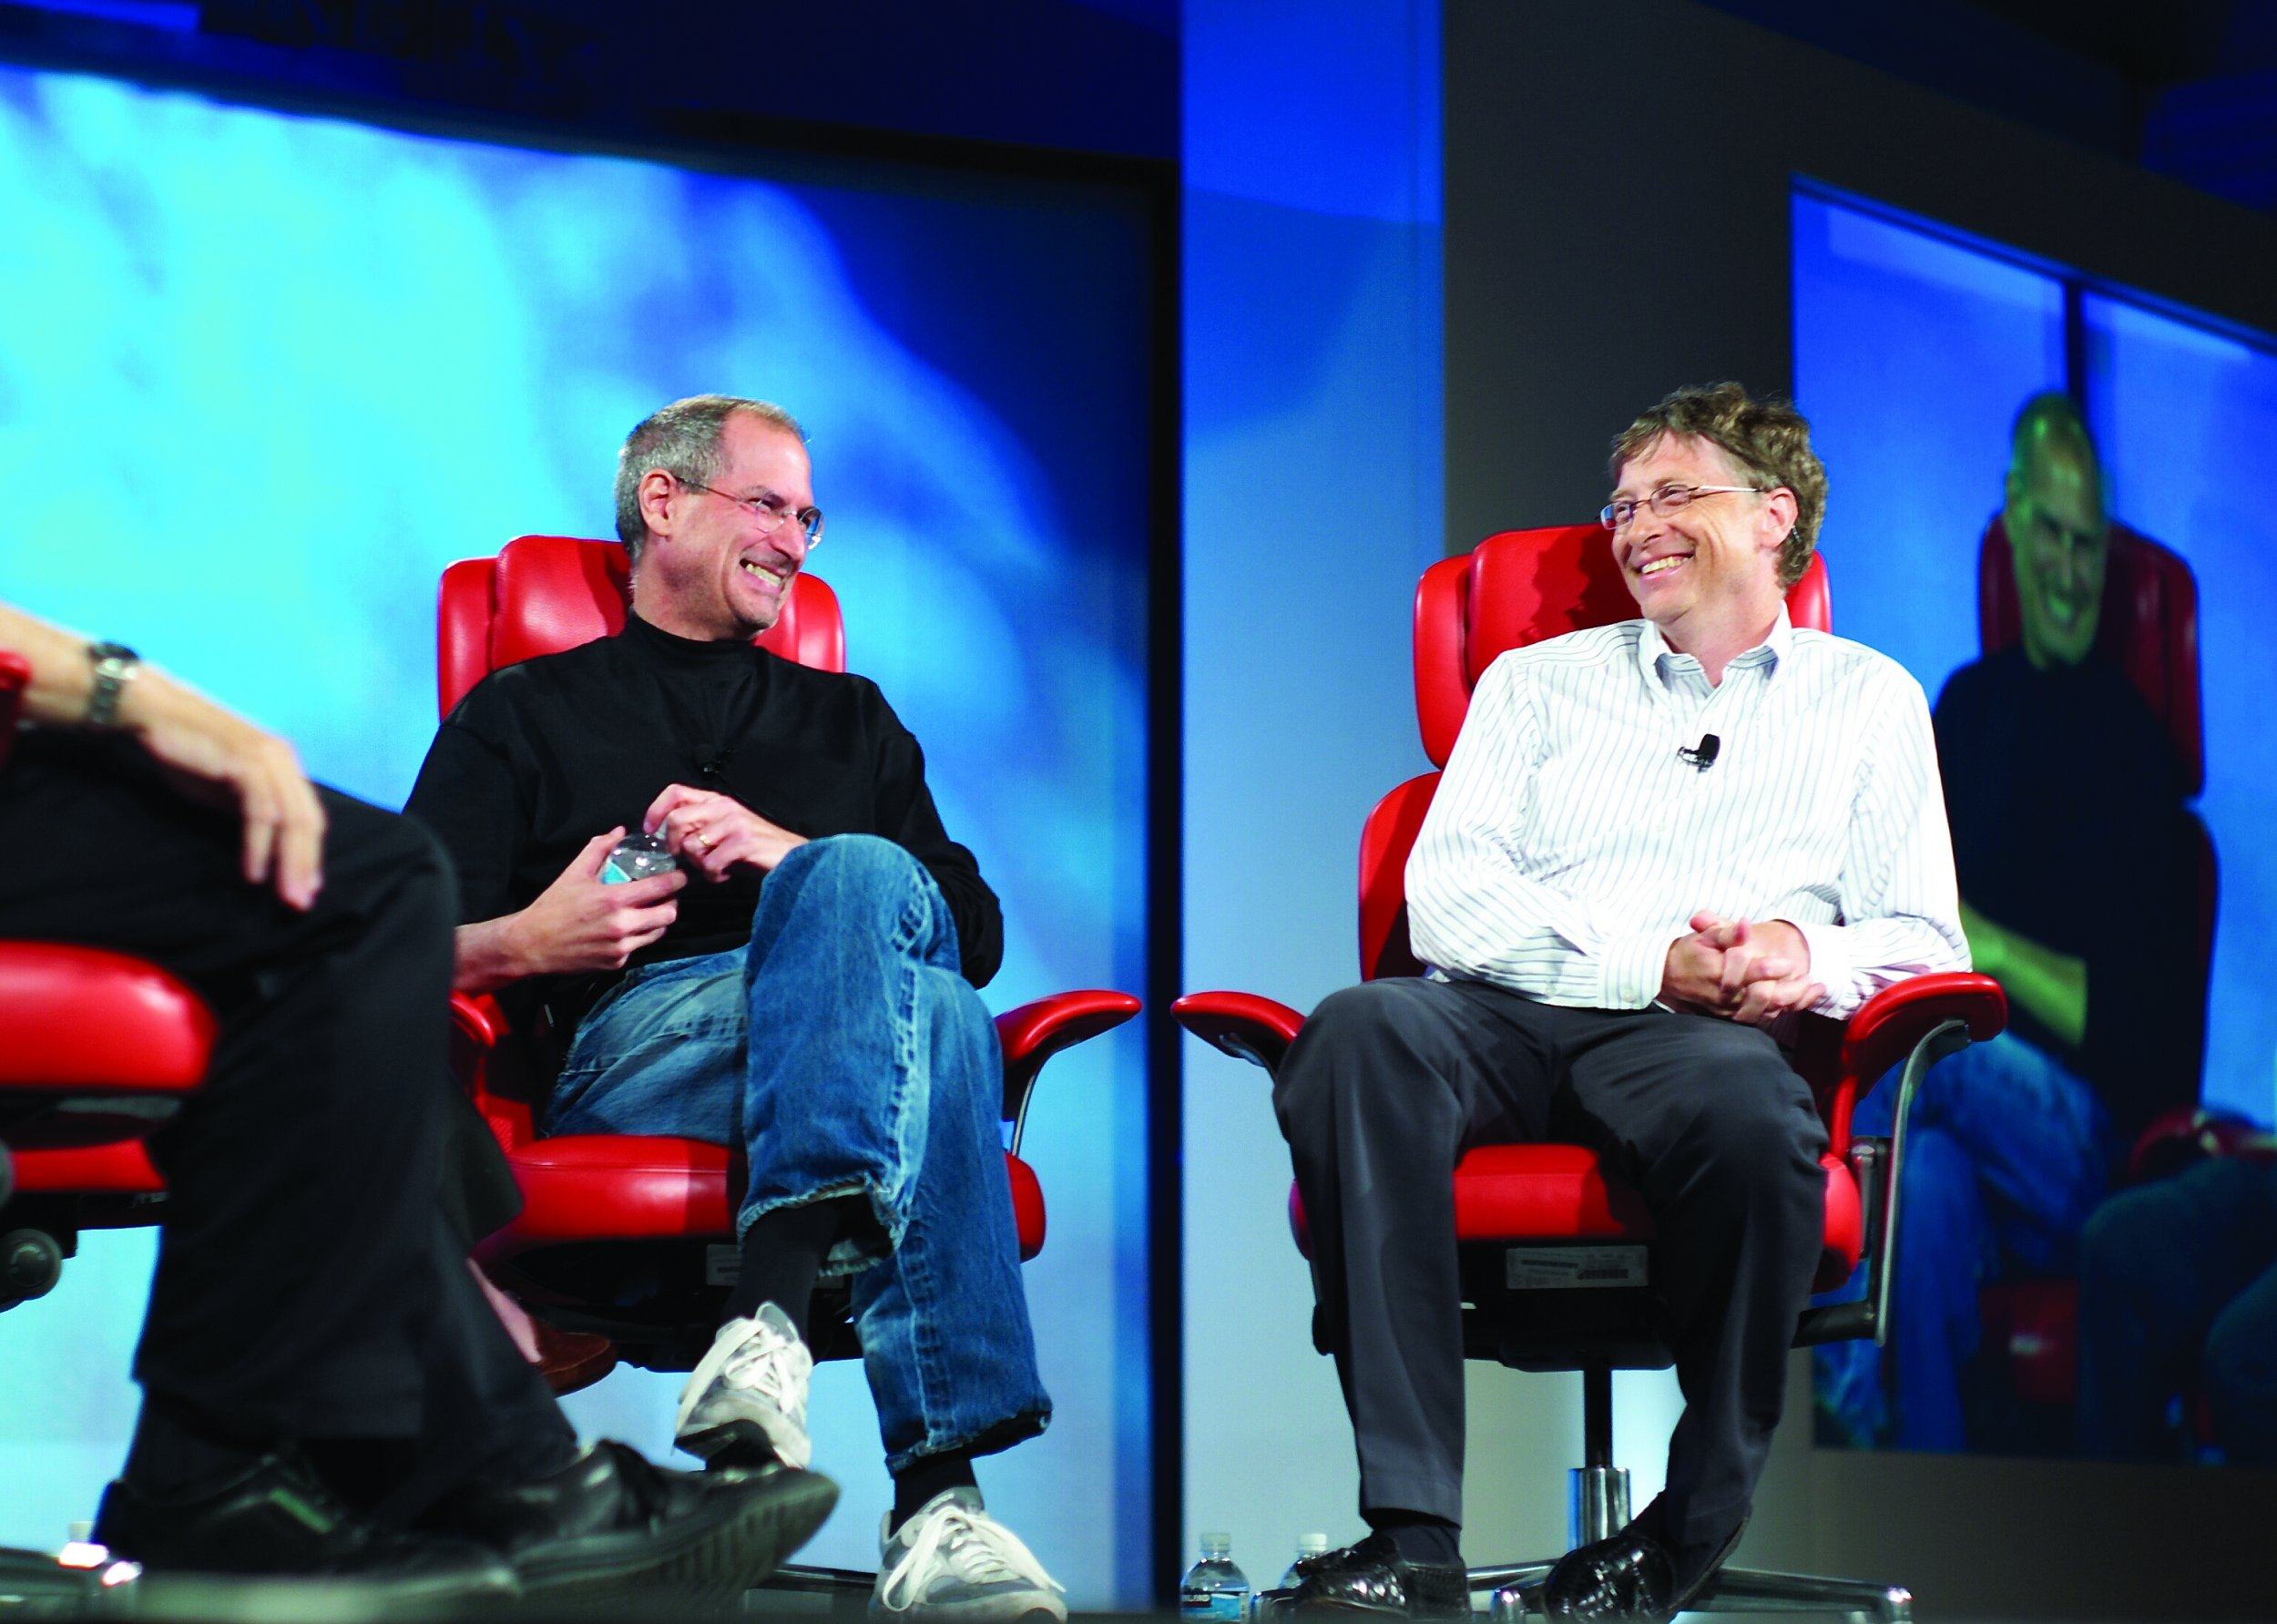 Steve_Jobs_and_Bill_Gates_(522695099)